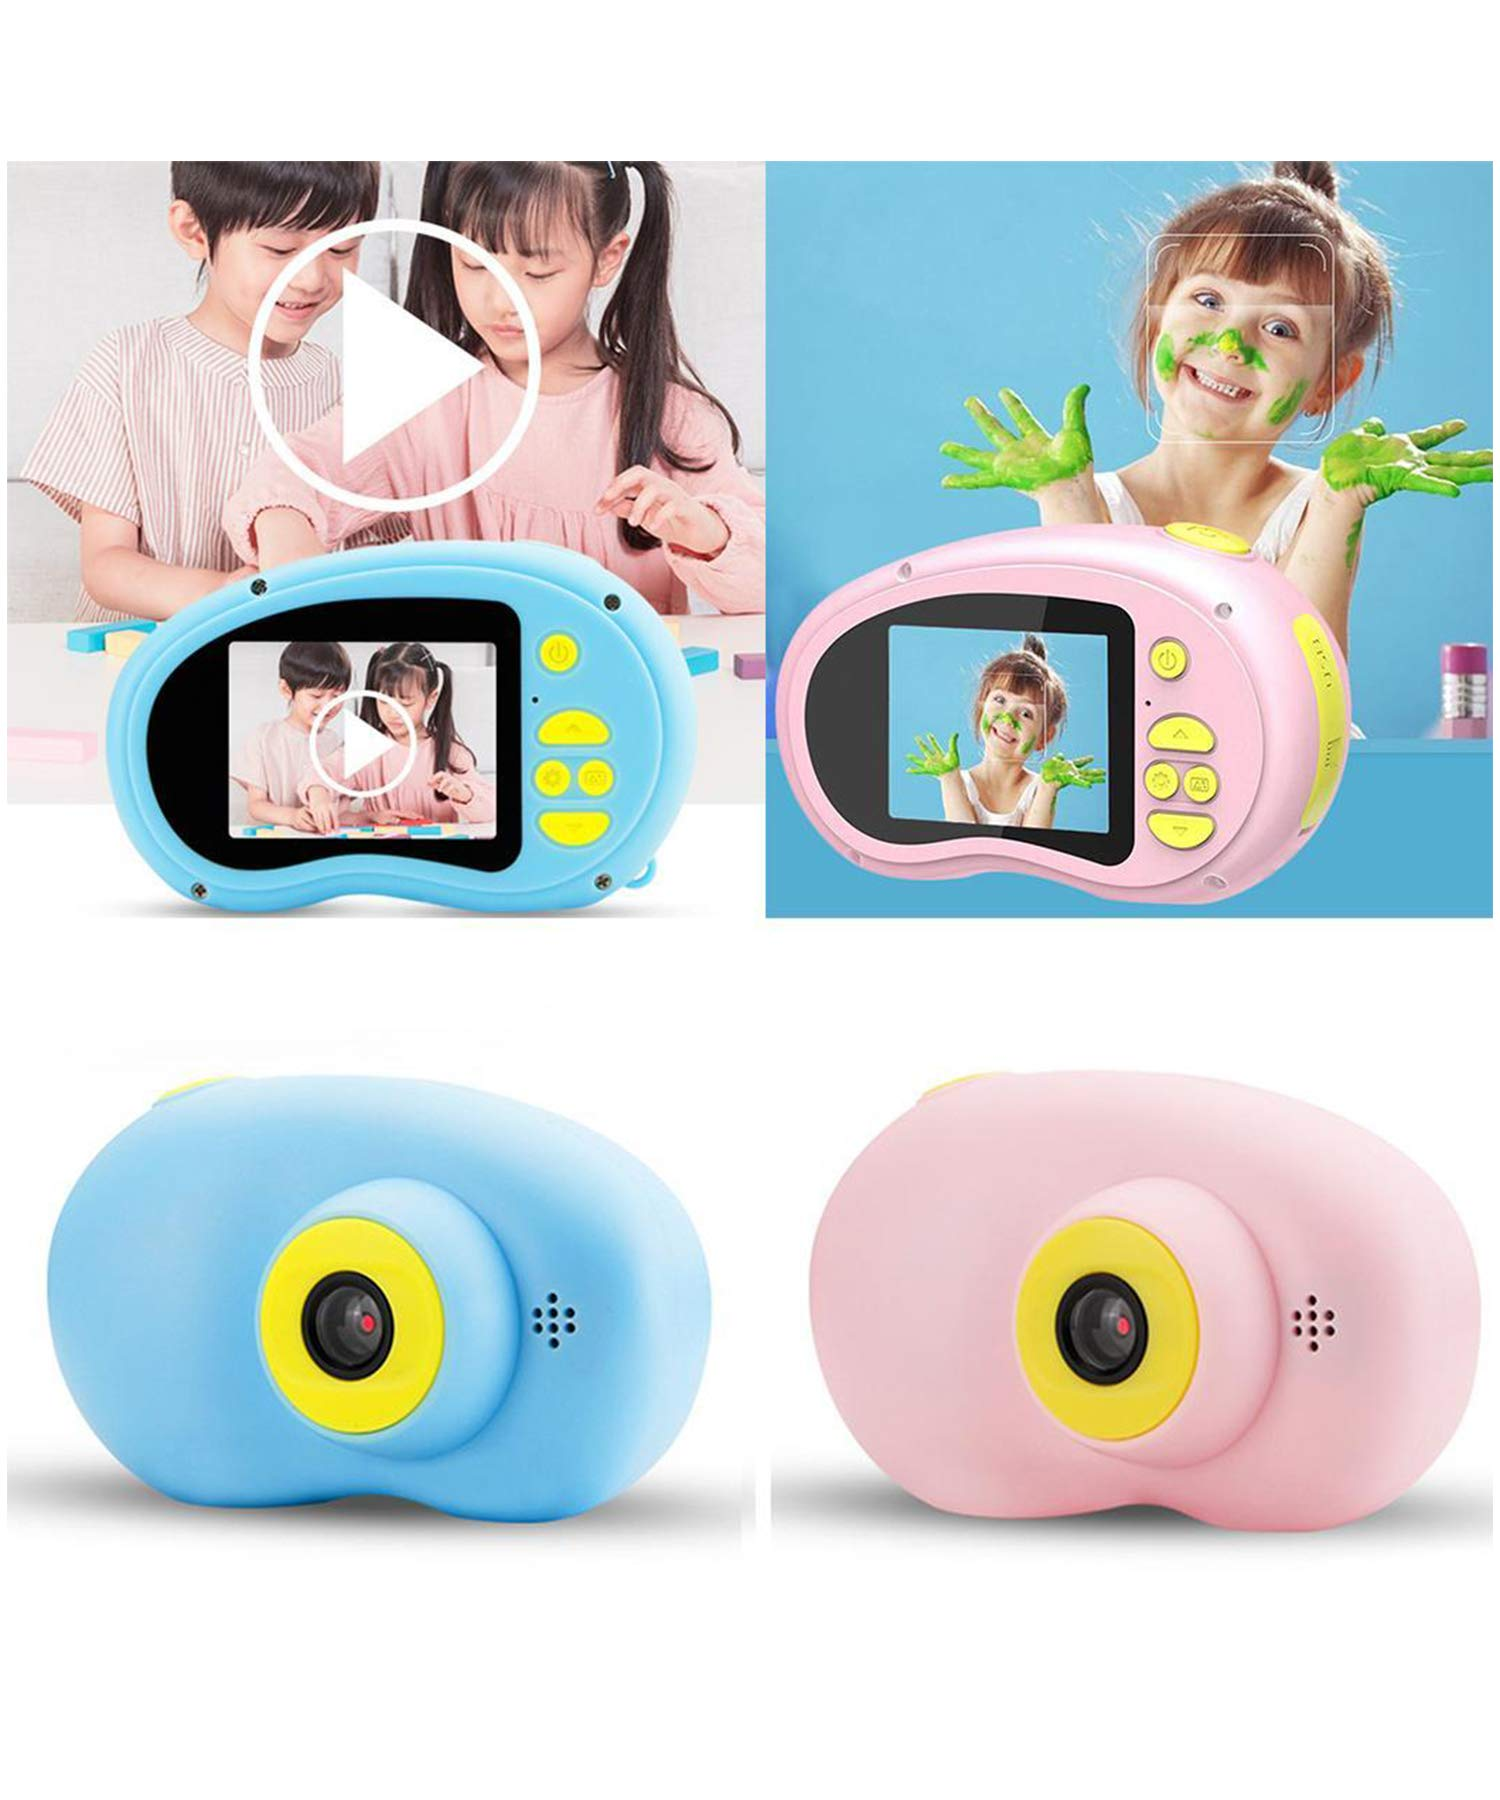 Yirind Kids Camera Support Video Function, 2 inch HD Digital 800MP Child Camera for Outdoor Play, for 3-12 Years Old Children (SD Card Not Included),Blue by Yirind (Image #1)